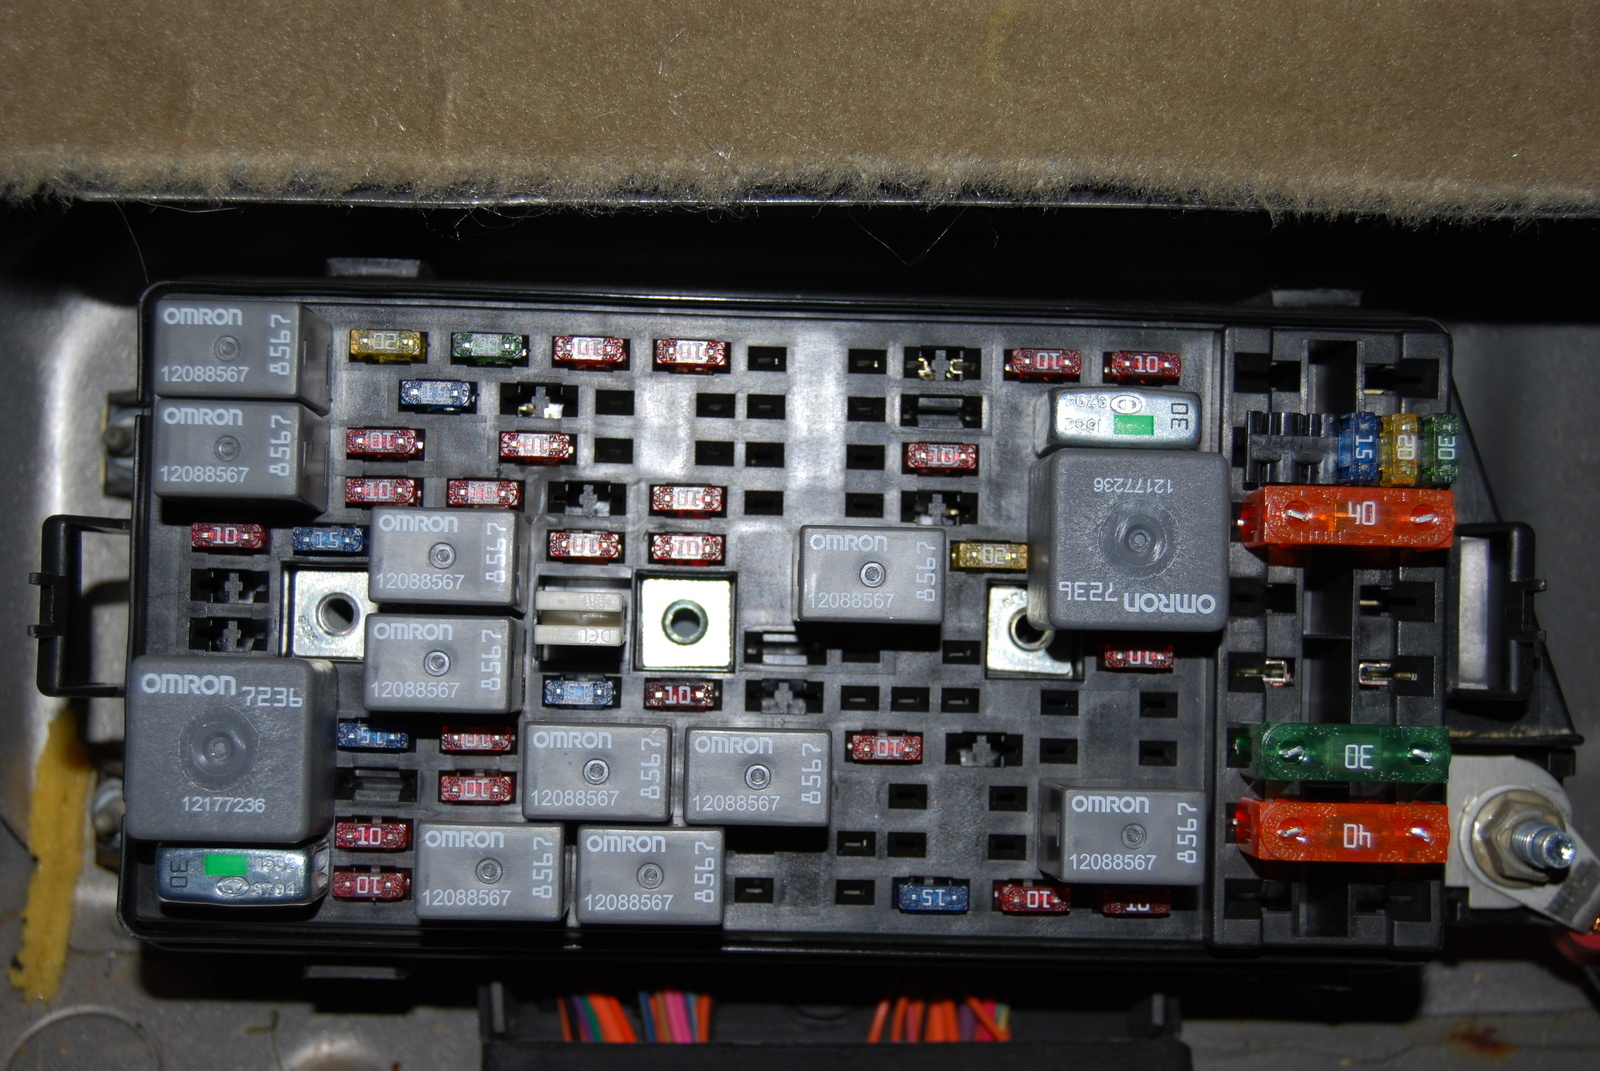 Fuse Box 2002 Buick Lesabre - Wiring Diagram Data  Pontiac Bonneville Fuse Box on 2005 pontiac grand am fuse box, 2010 pontiac g6 fuse box, 2005 pontiac g6 fuse box, 2008 pontiac grand prix fuse box, 2007 pontiac grand prix fuse box, 2003 chrysler pt cruiser fuse box, 1995 pontiac grand prix fuse box, 2004 pontiac bonneville fuse box, 1999 pontiac bonneville fuse box, 2001 pontiac bonneville fuse box, 2004 pontiac montana fuse box, 2002 pontiac grand prix fuse box, 1995 pontiac bonneville fuse box, 2001 pontiac grand prix fuse box, 1999 pontiac sunfire fuse box, 1998 pontiac bonneville fuse box, 2003 ford contour fuse box, 2003 chevrolet cavalier fuse box, 2000 pontiac grand am fuse box, 2005 pontiac bonneville fuse box,